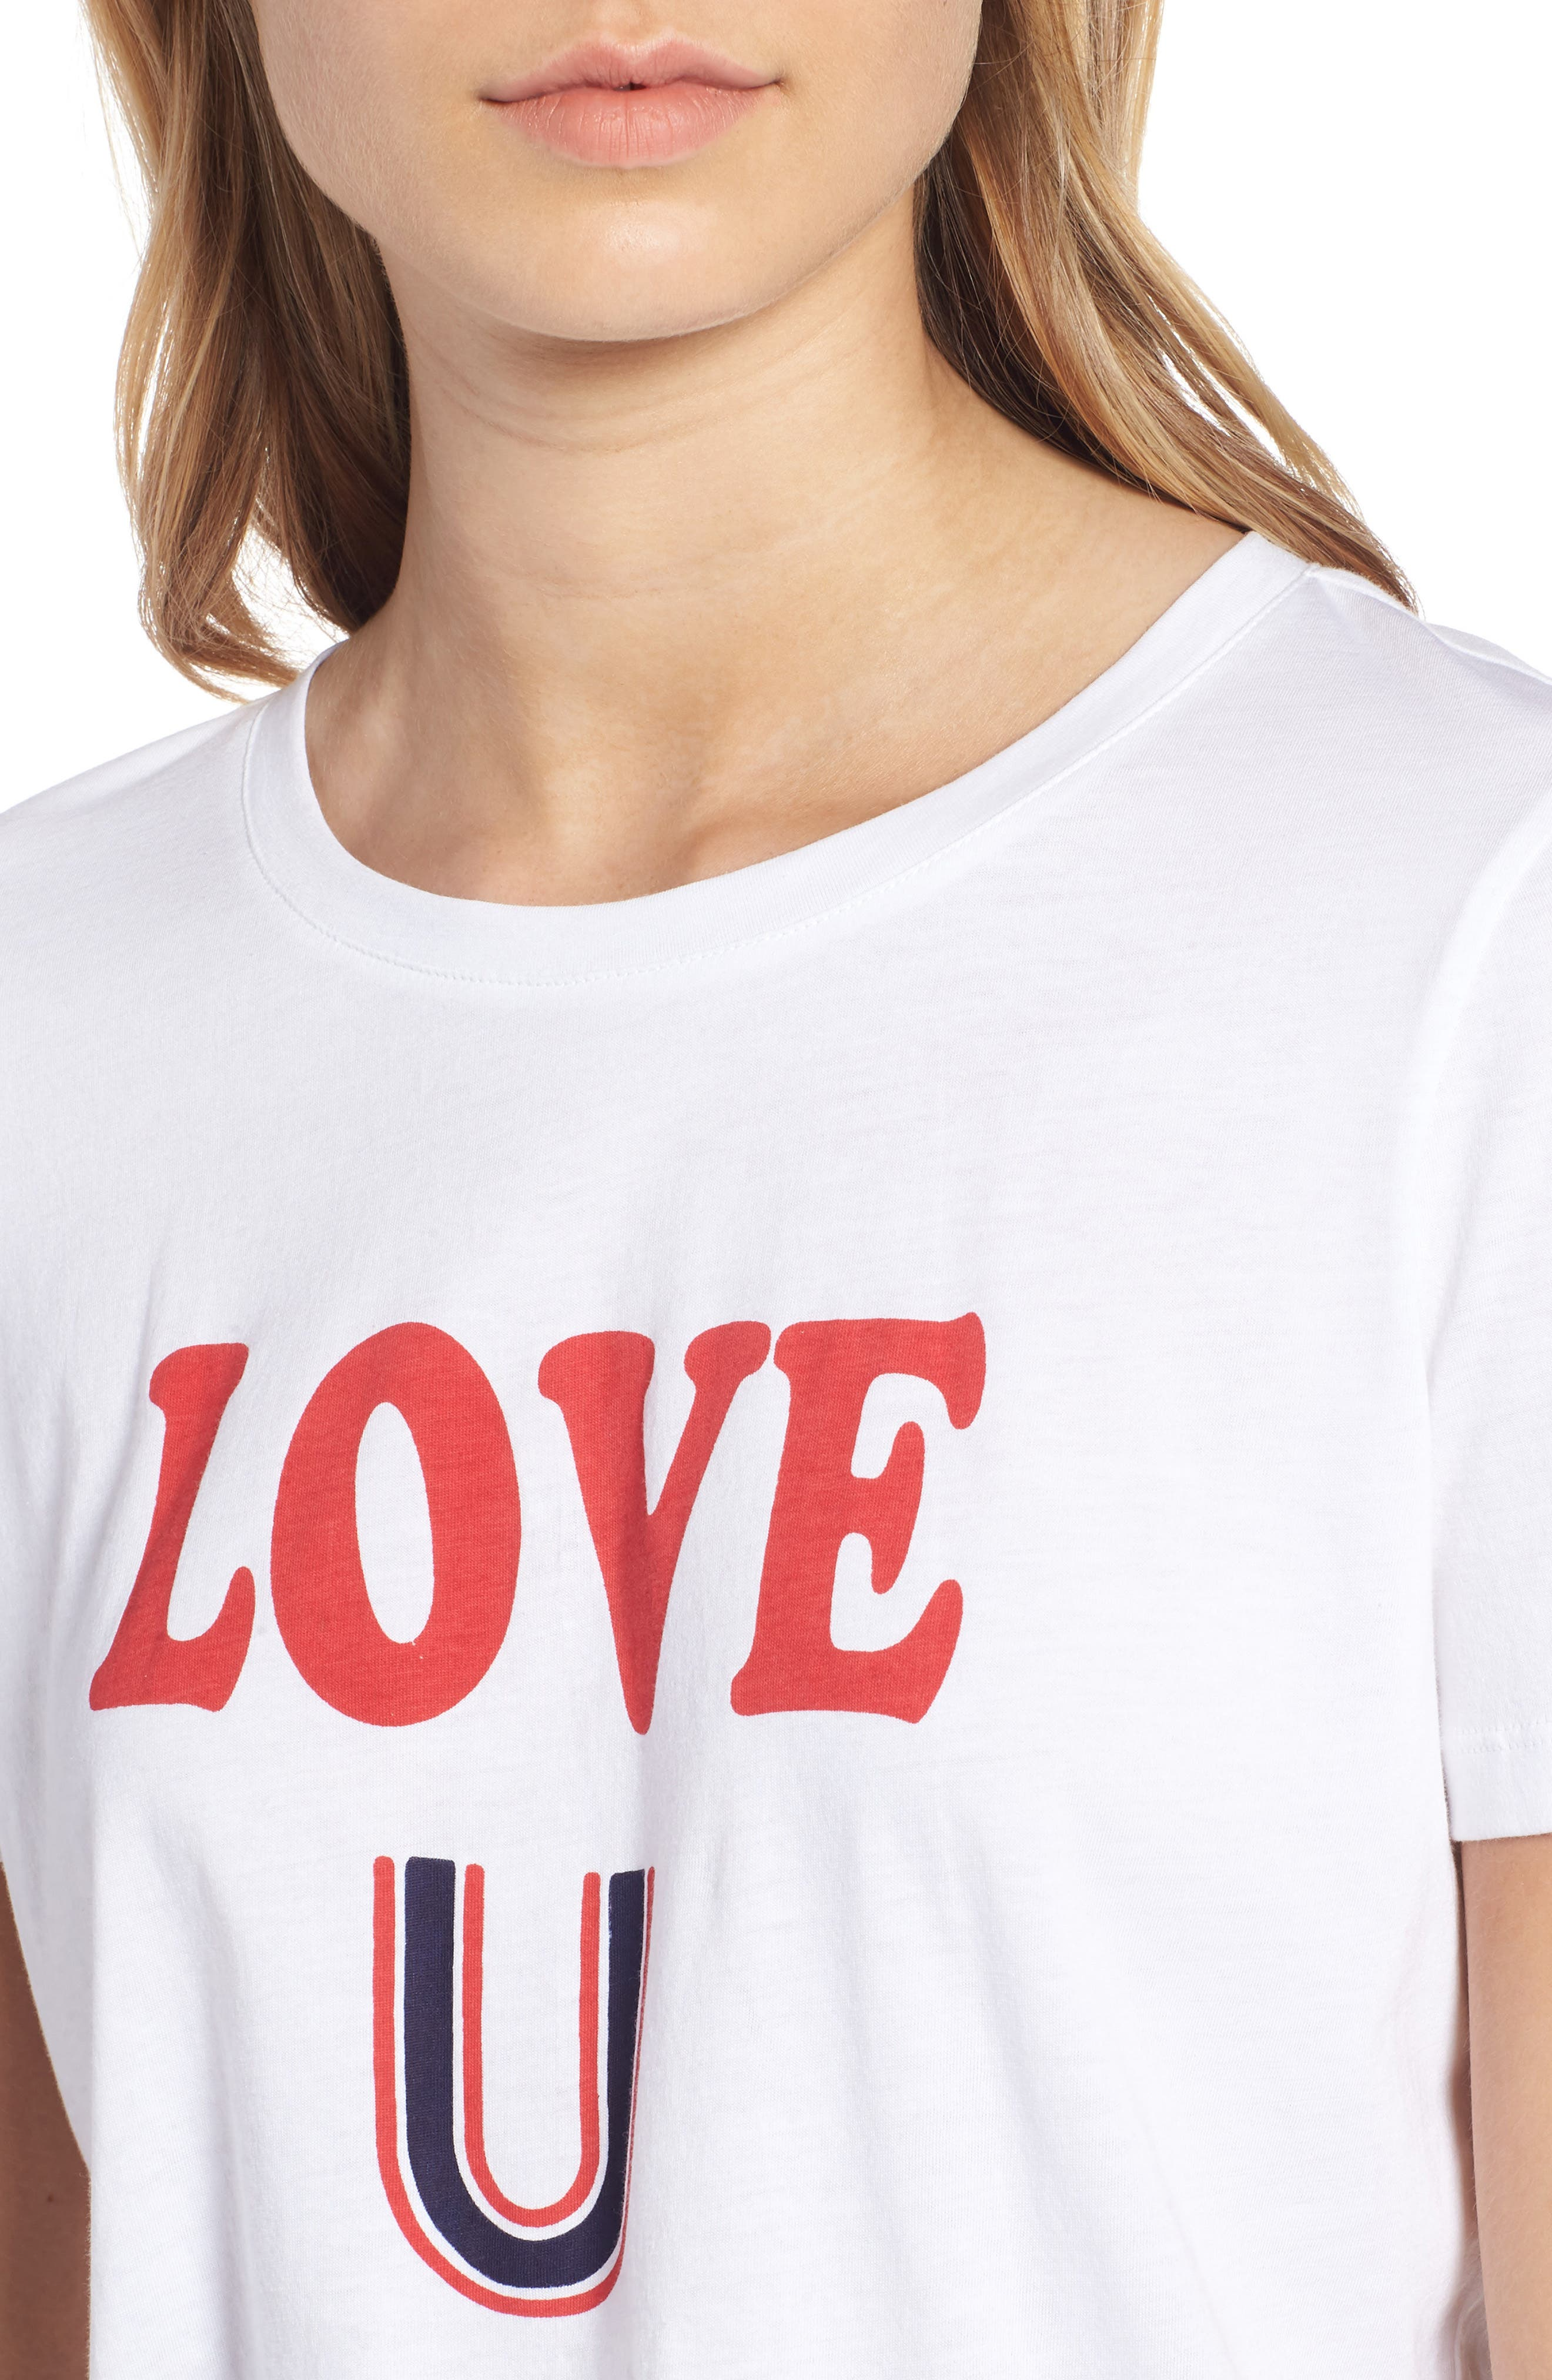 Short Sleeve Graphic Tee,                             Alternate thumbnail 4, color,                             WHITE- RED LOVE U